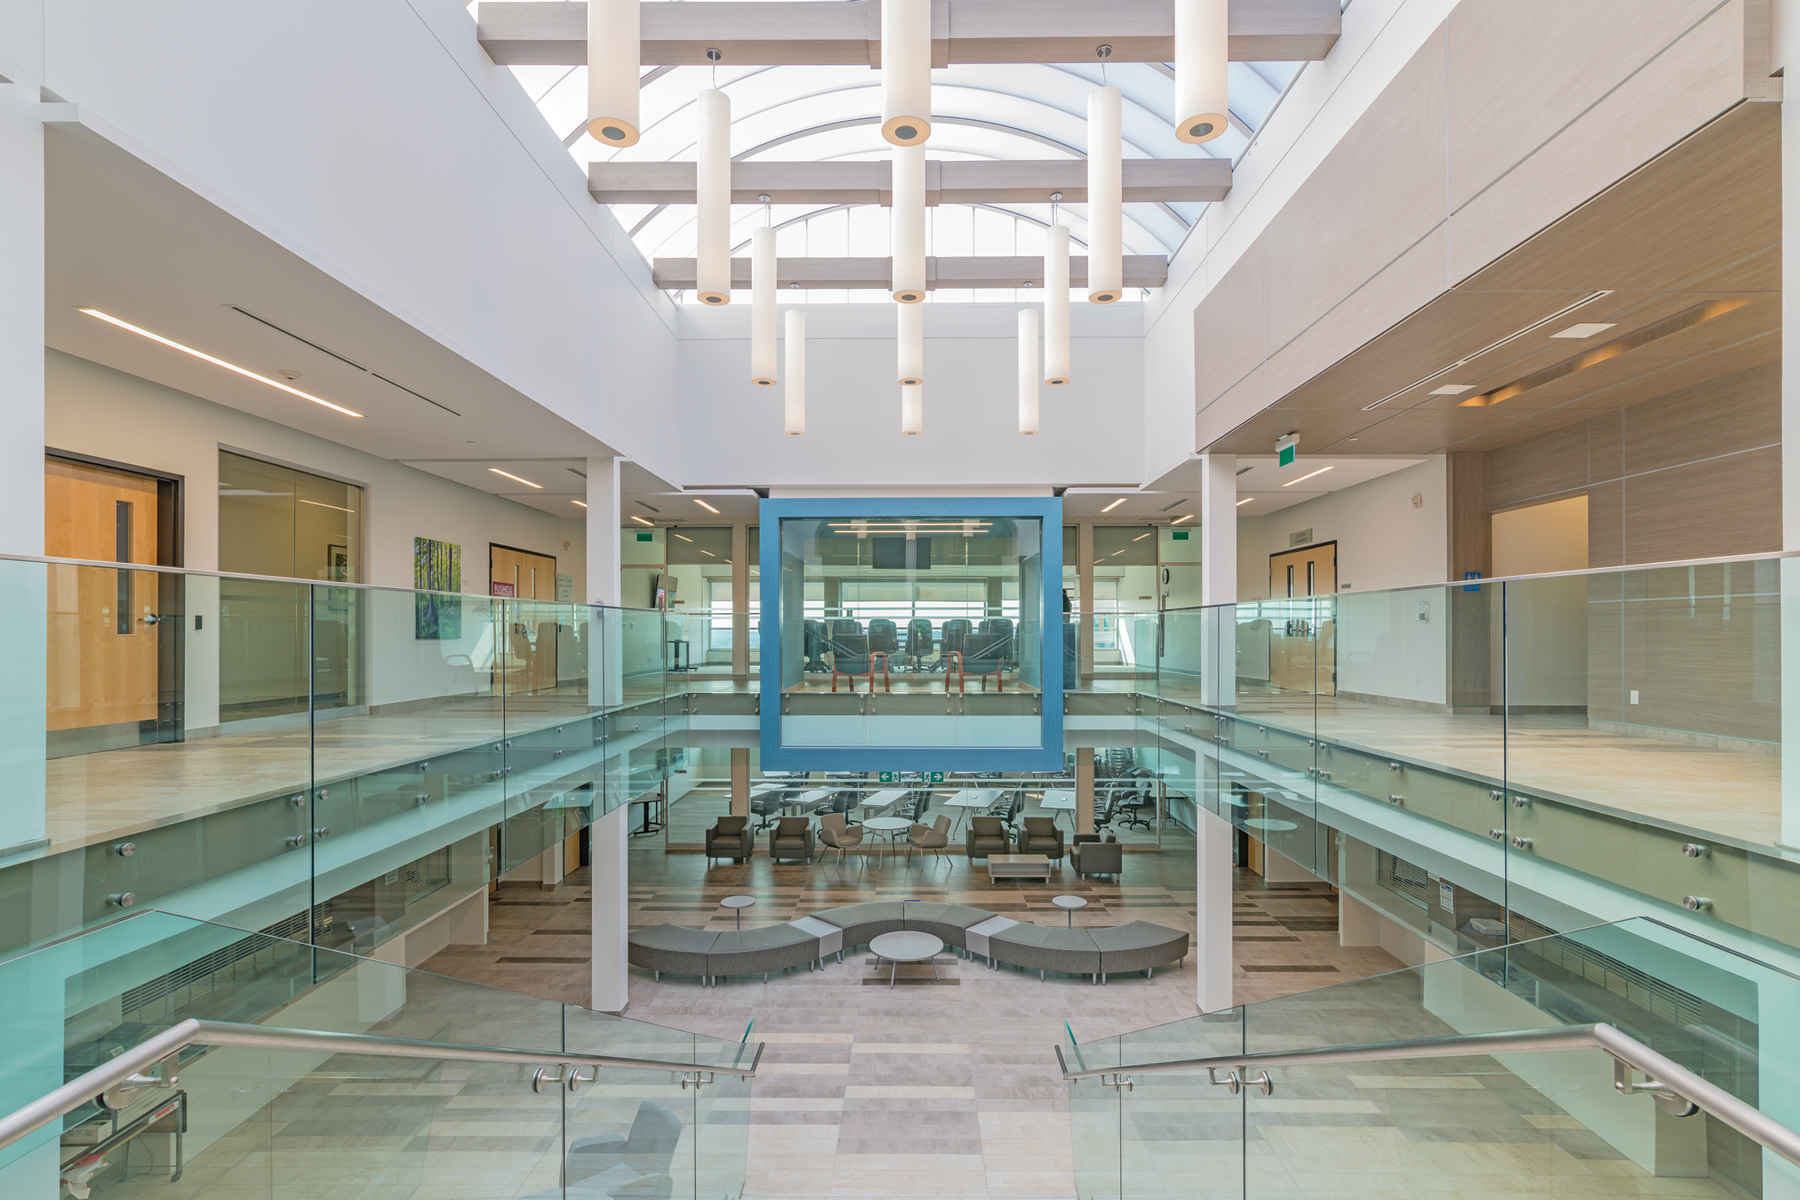 Central double height atrium space, with second storey perimeter corridors and blue framed glazed meeting room and seating on level below